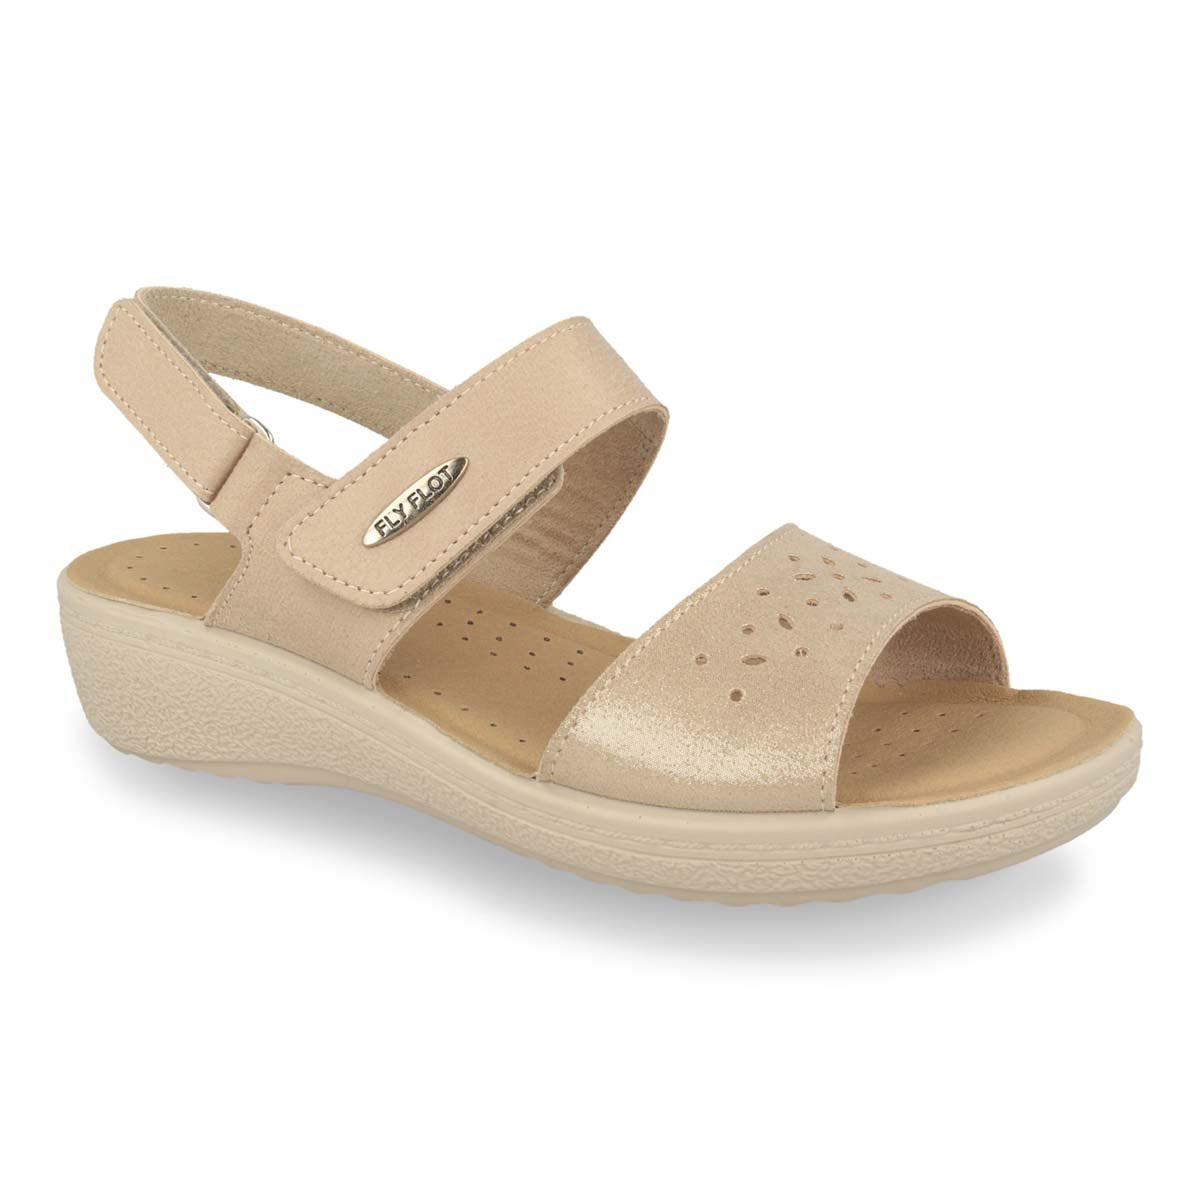 Photo of the Cloth Woman Sandal  Beige(55d66zb)